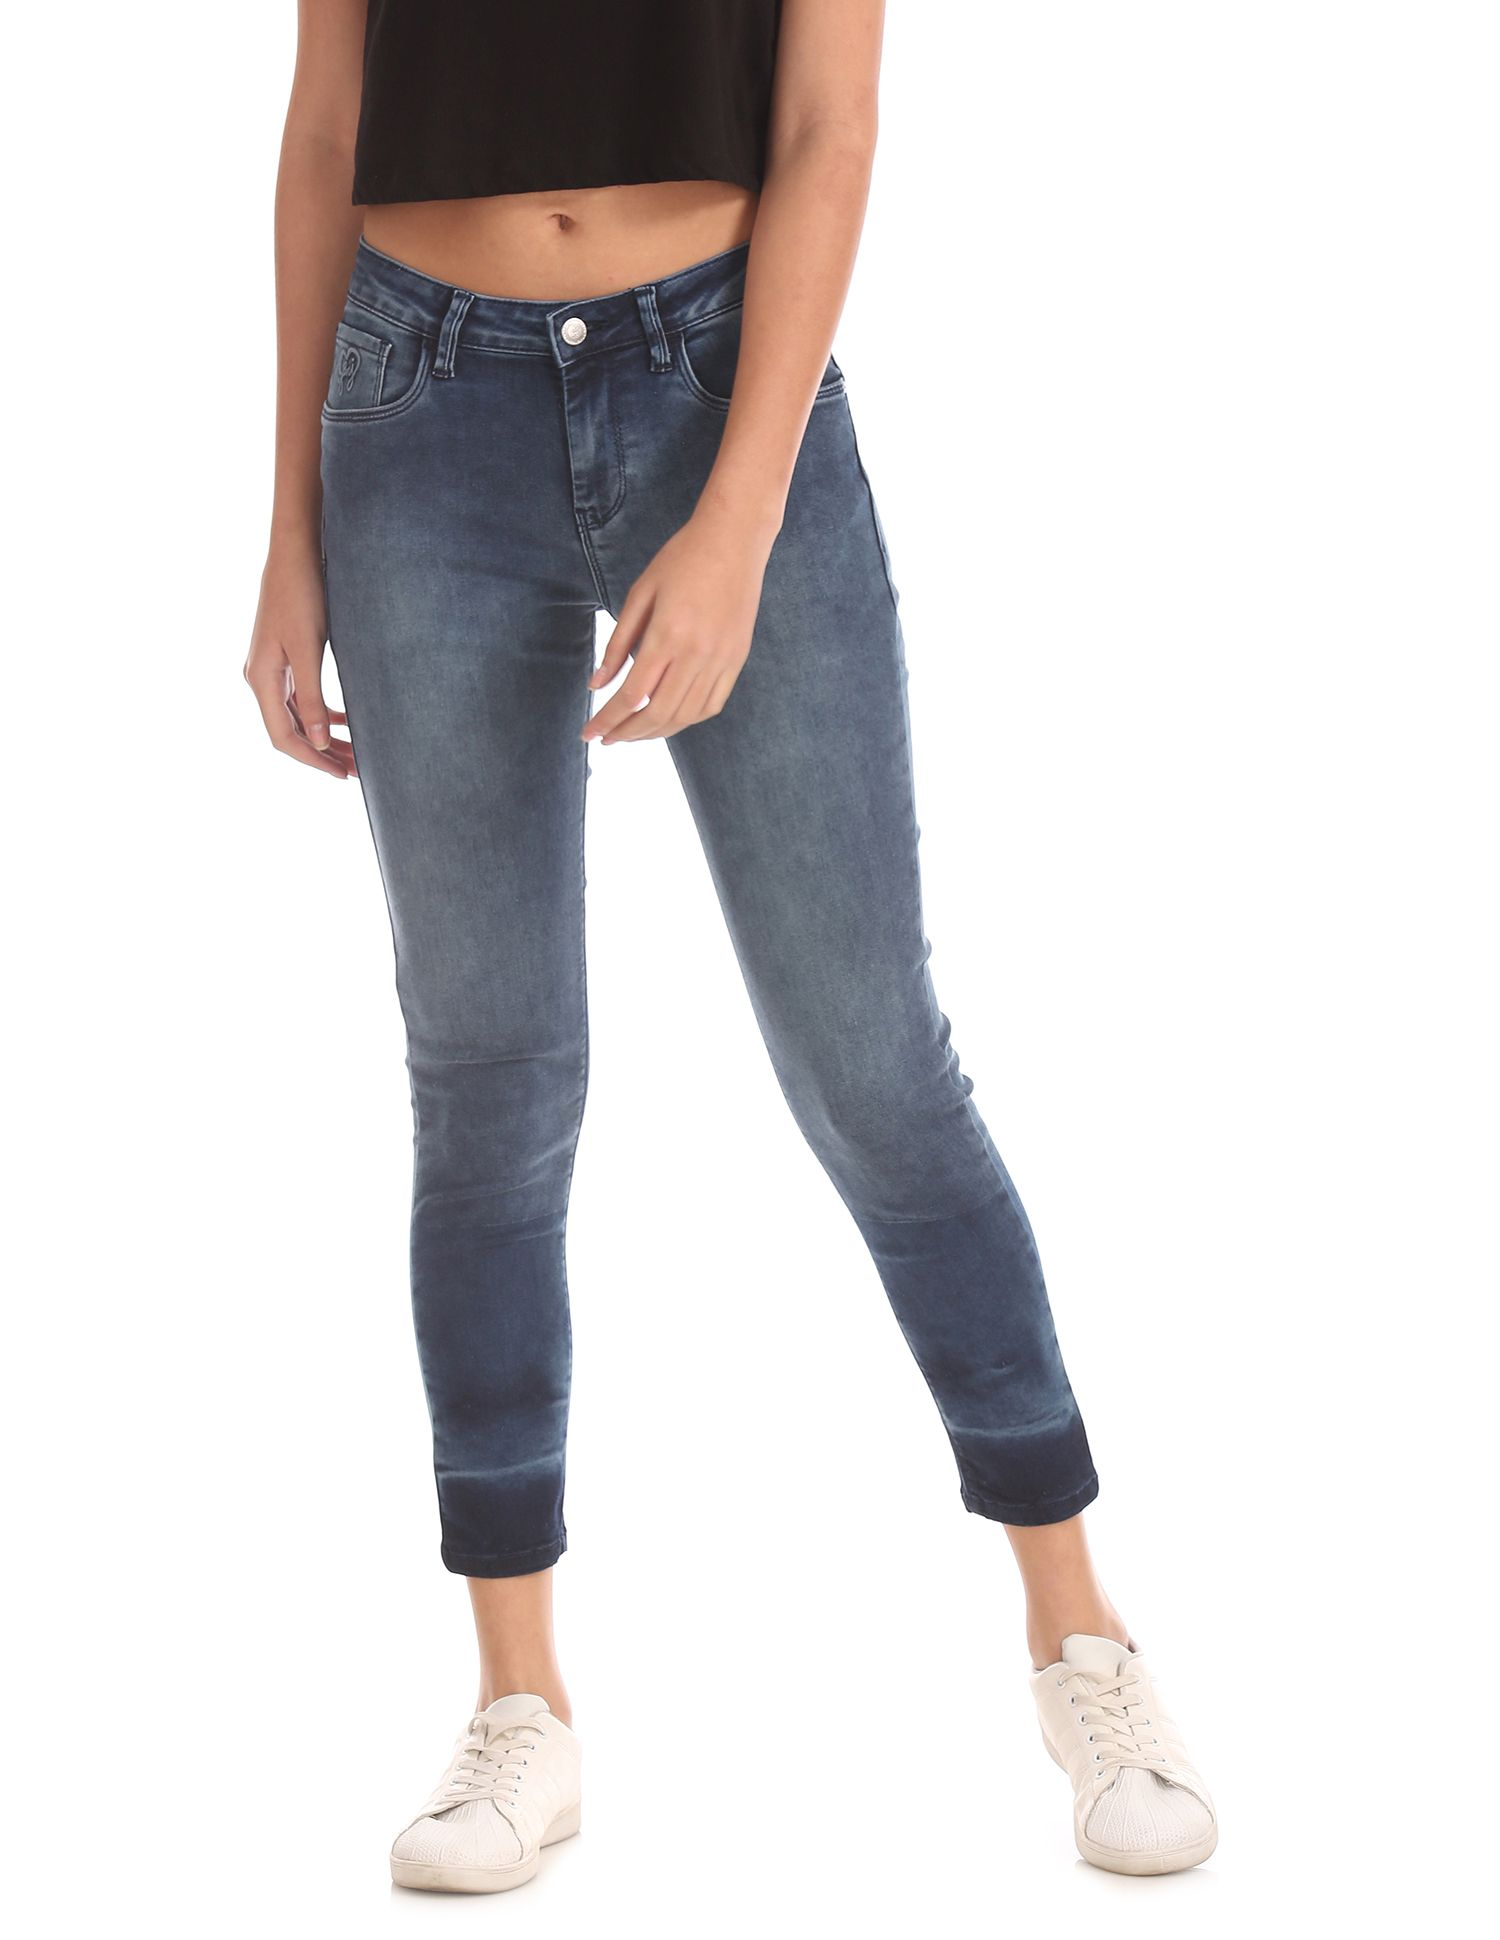 Flying Machine Cotton Jeans - Blue